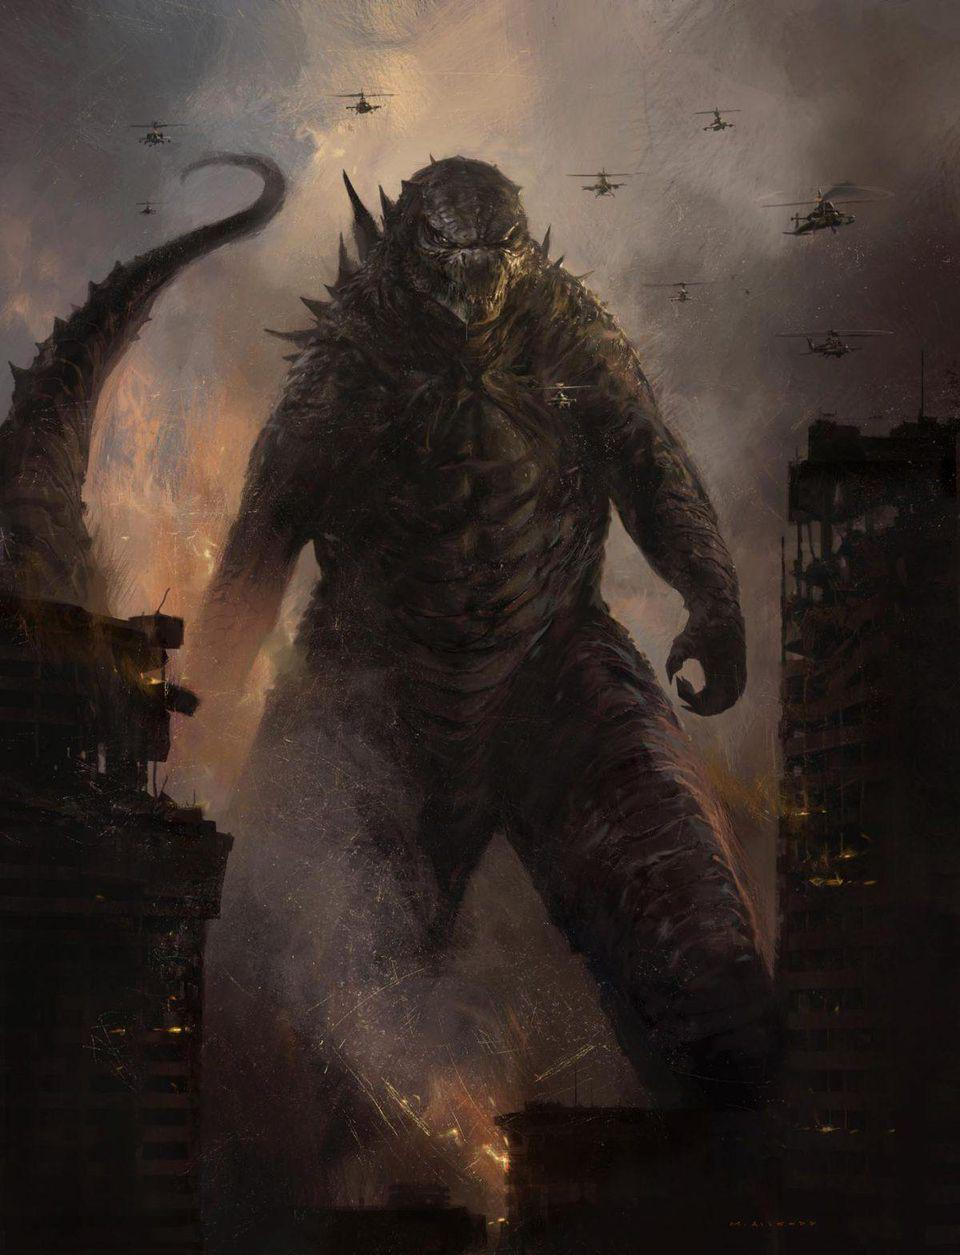 Godzilla 2: King of the Monsters 2019 Concept Art